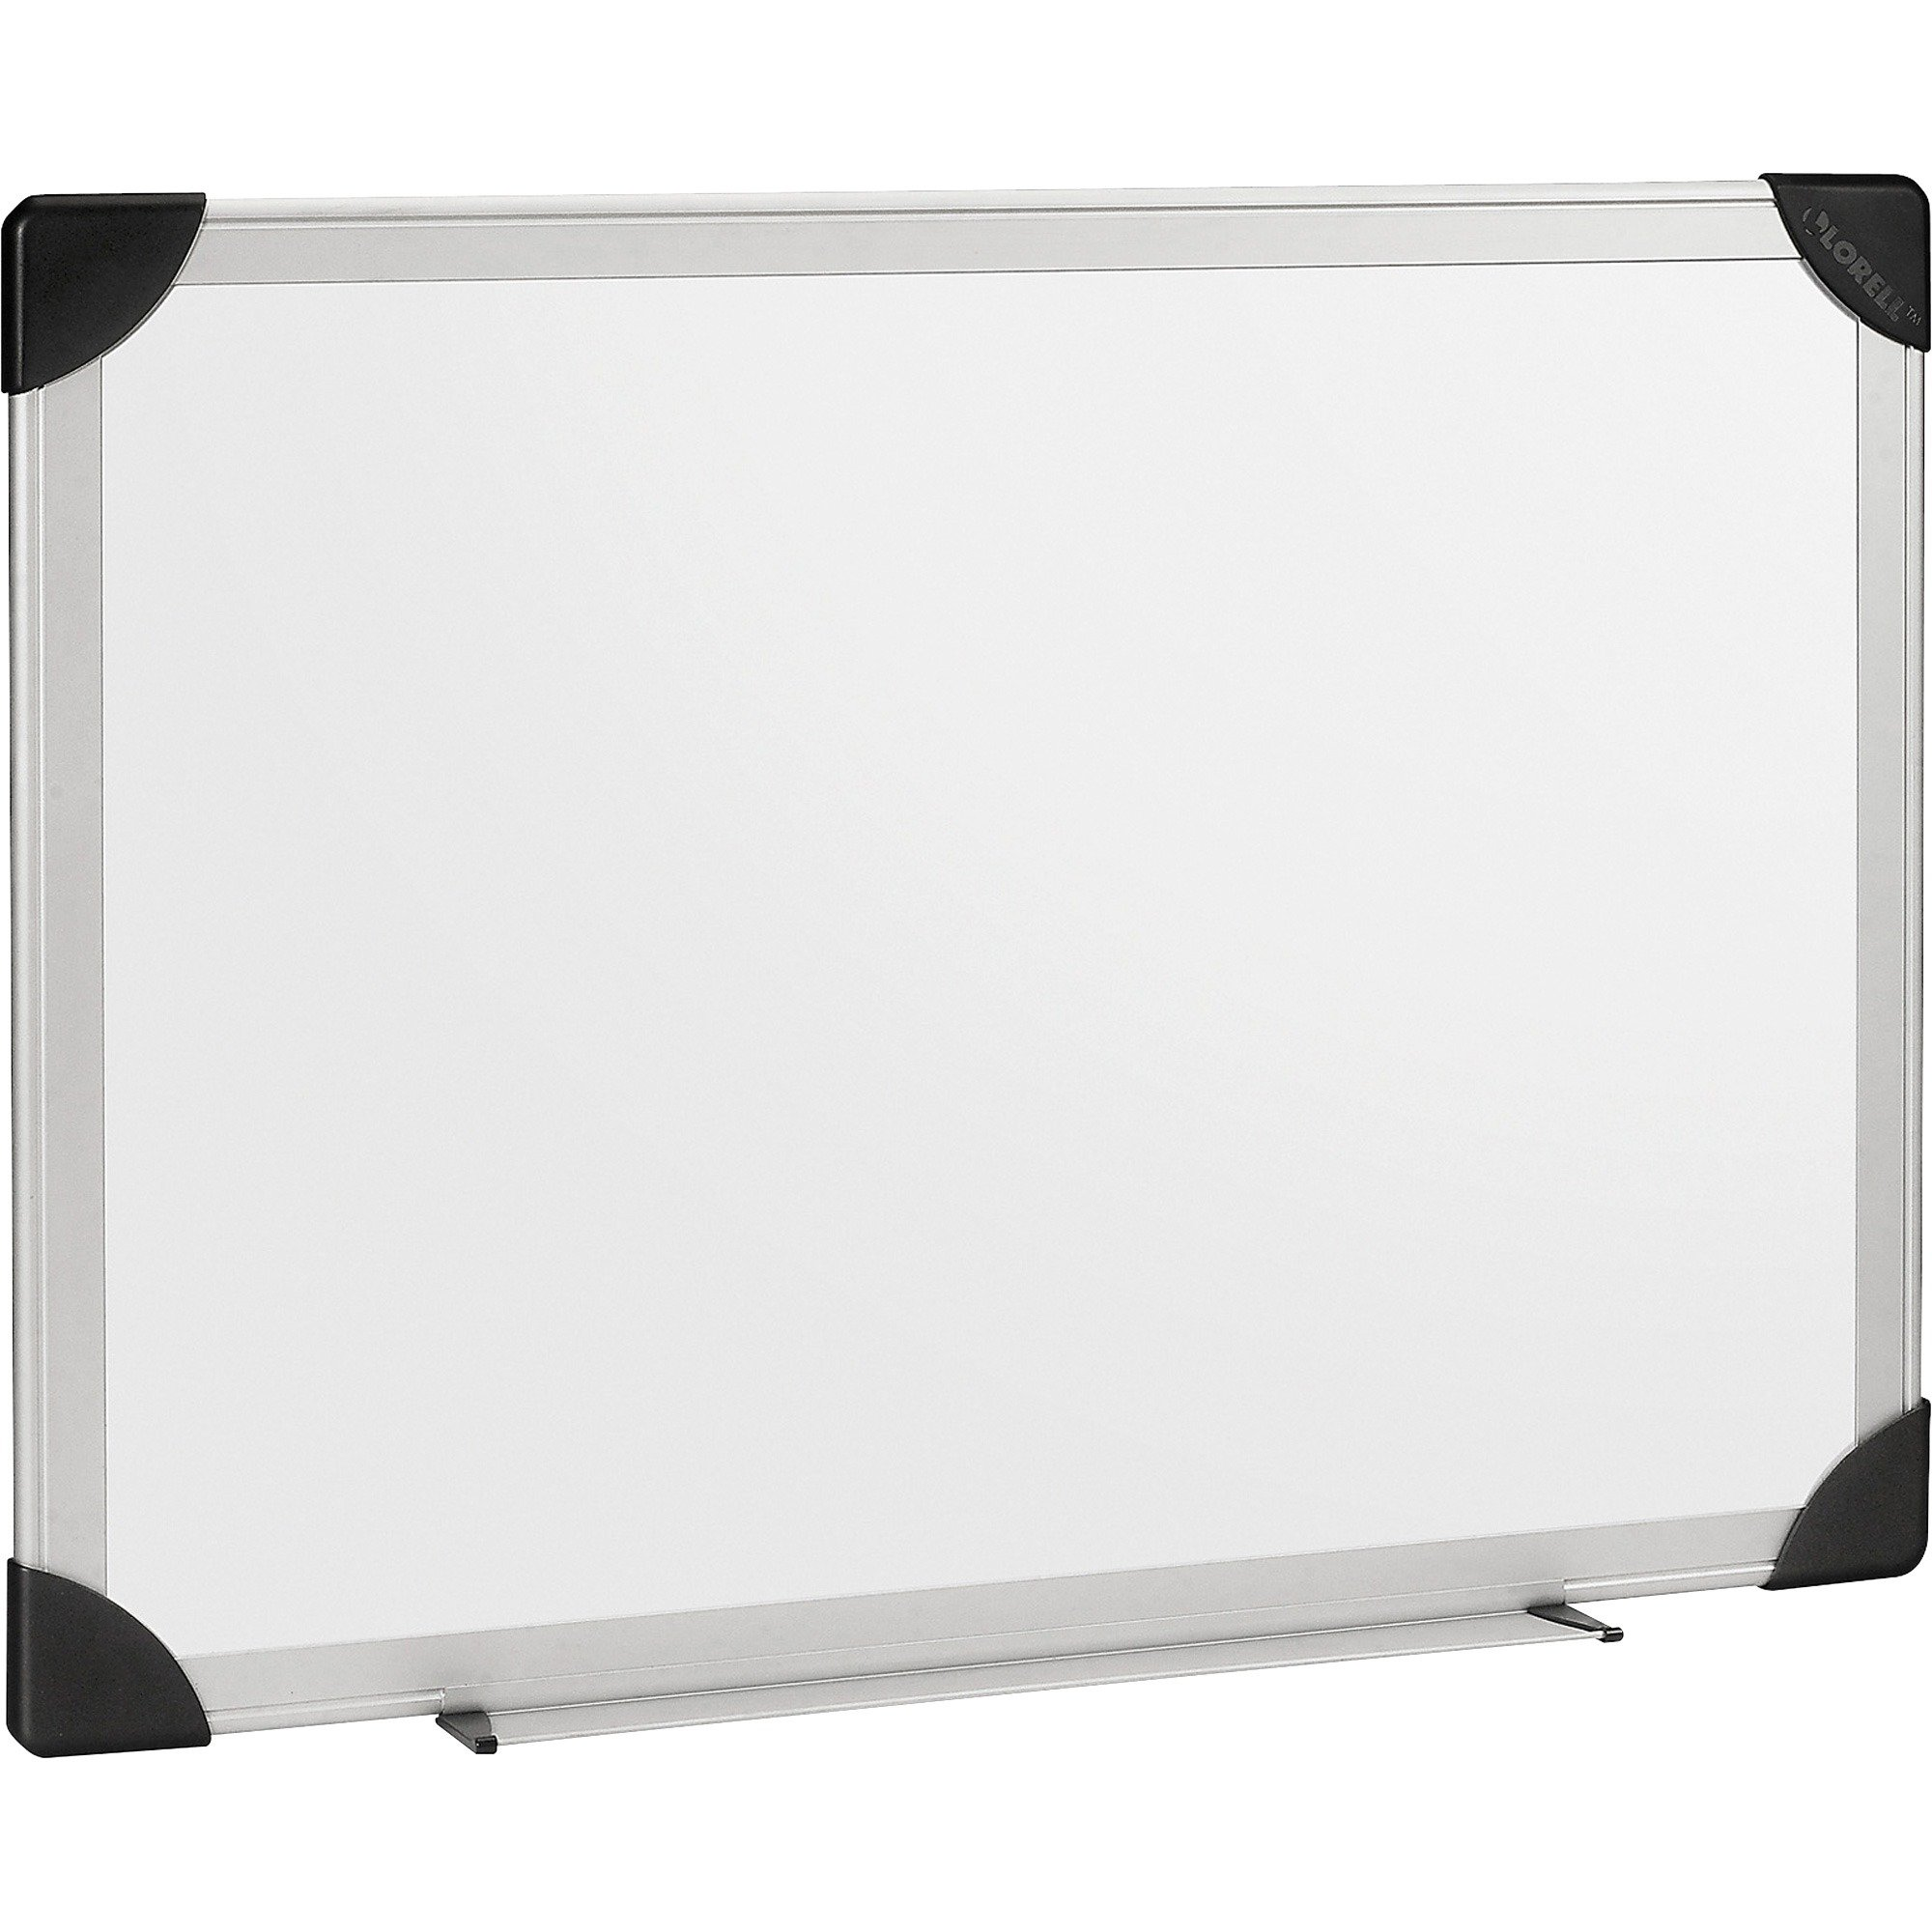 Lorell 55653 Dry-Erase Board, 6'x4', Aluminum Frame/White by Lorell